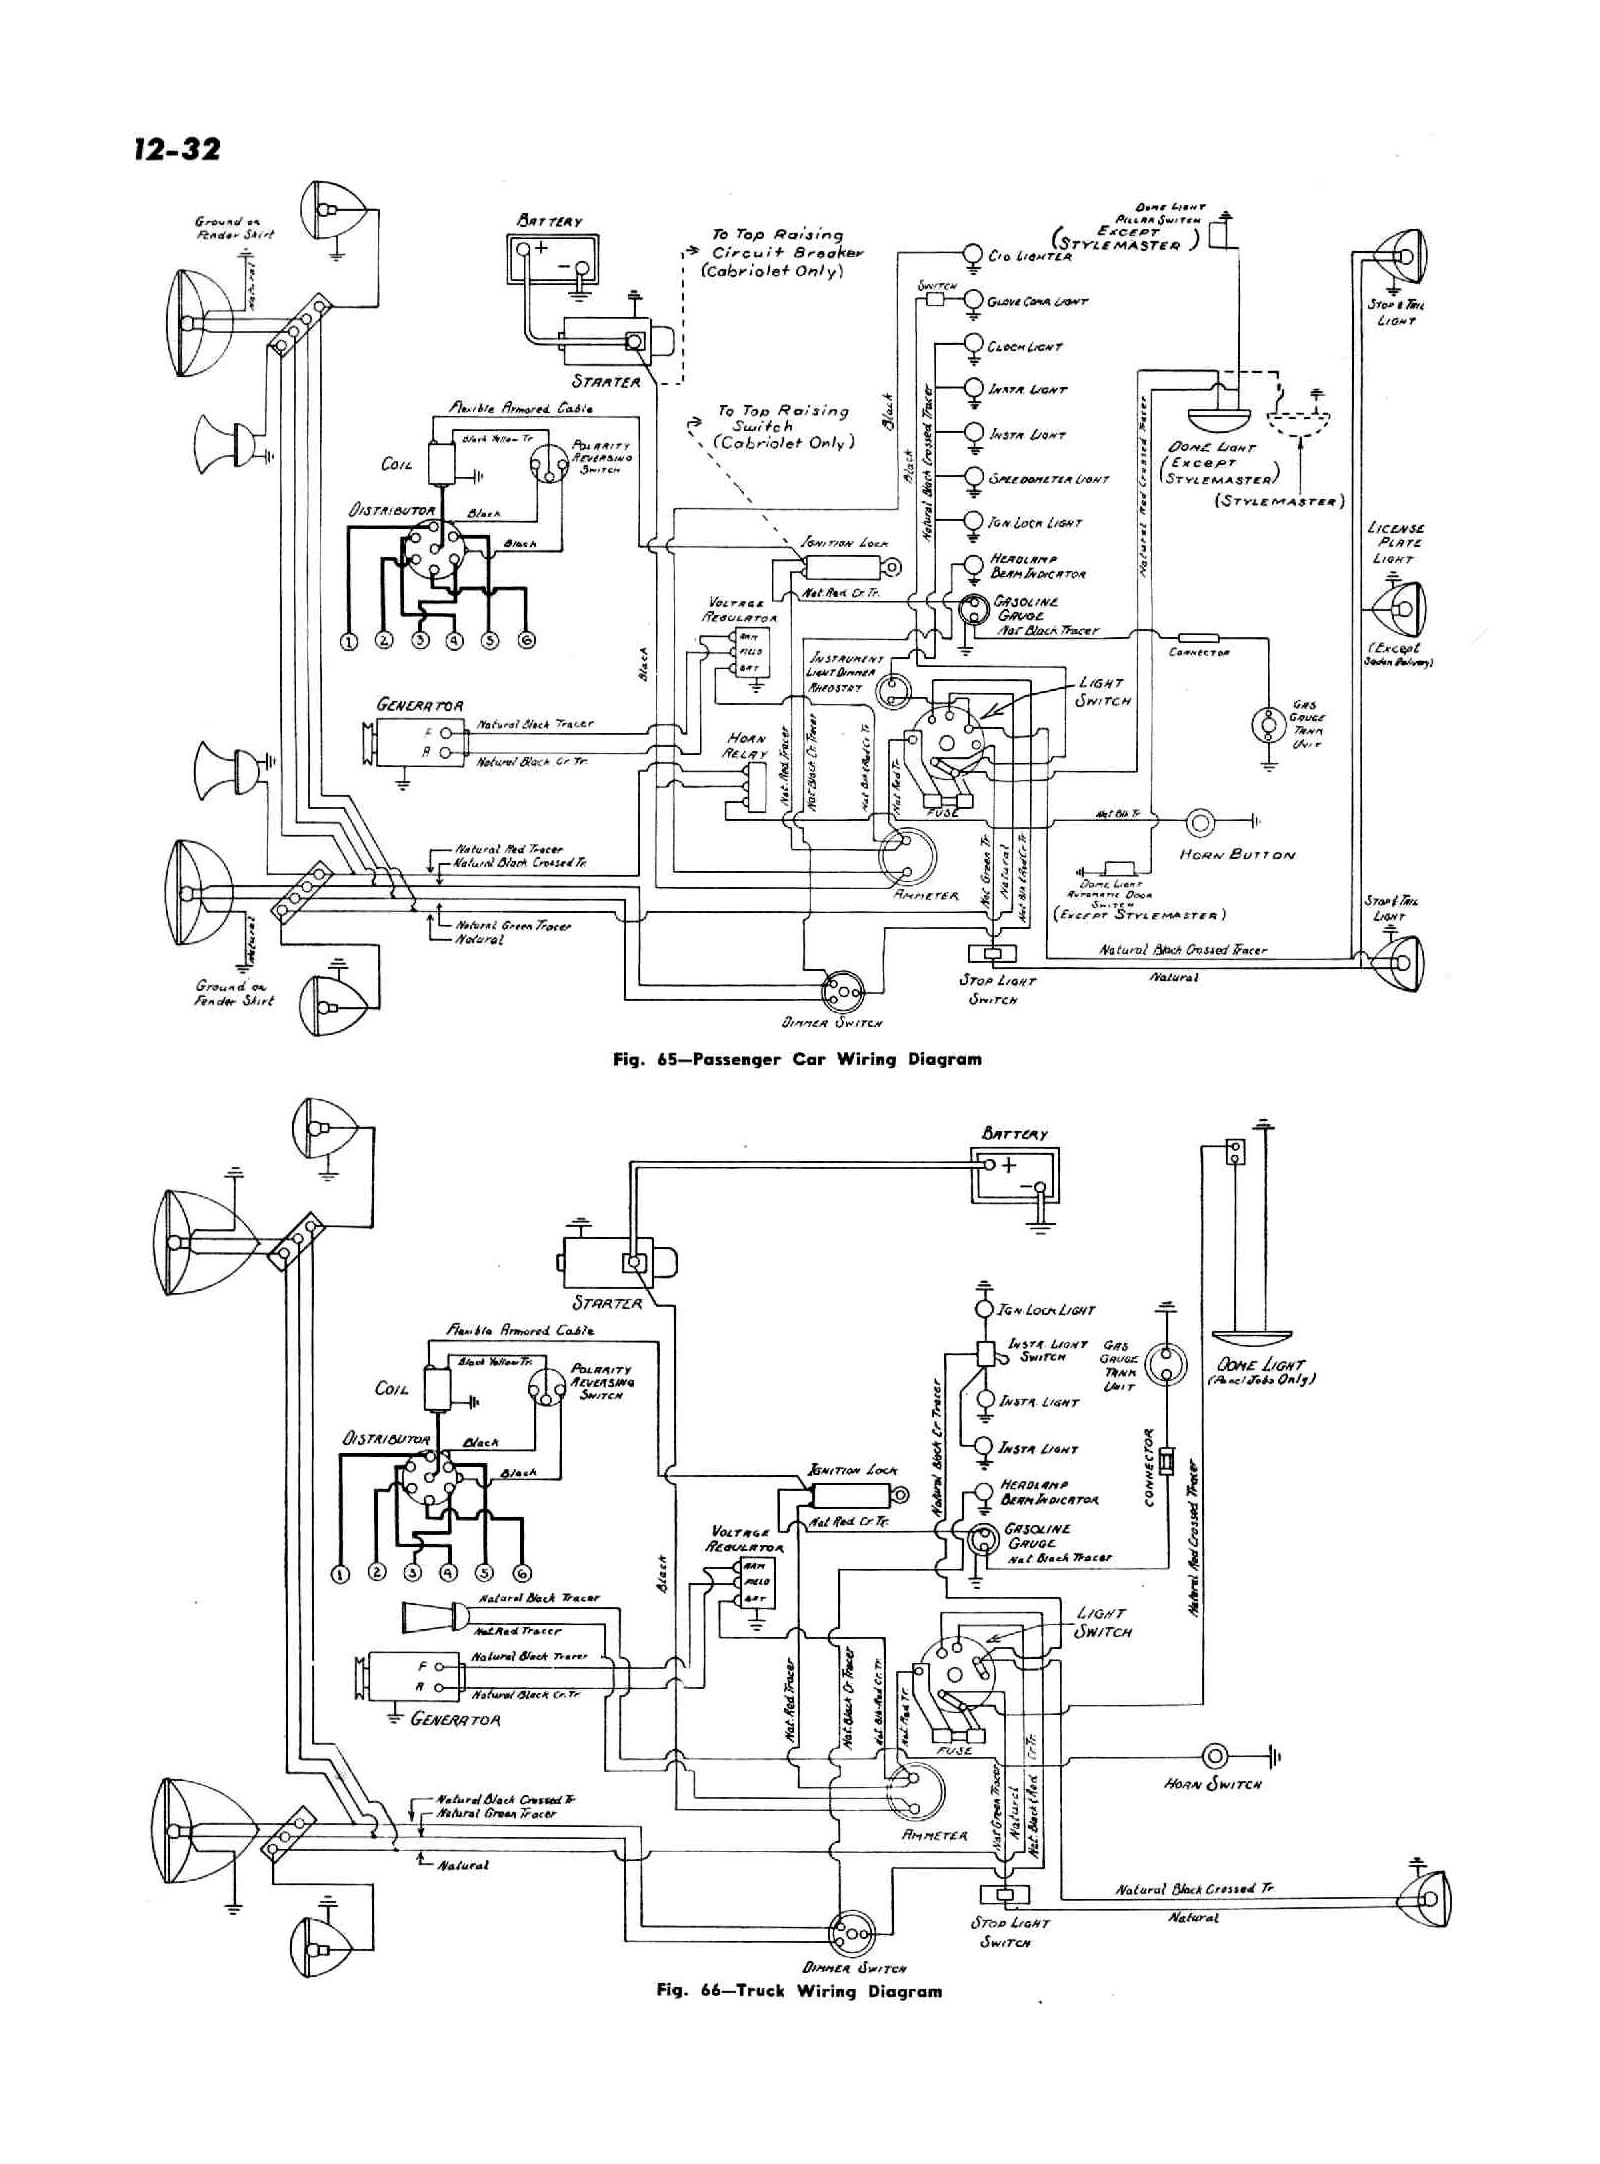 2004 Isuzu Engine Diagram Wiring Diagrams Fuse Box For Ascender 2002 Axiom Rodeo 1999